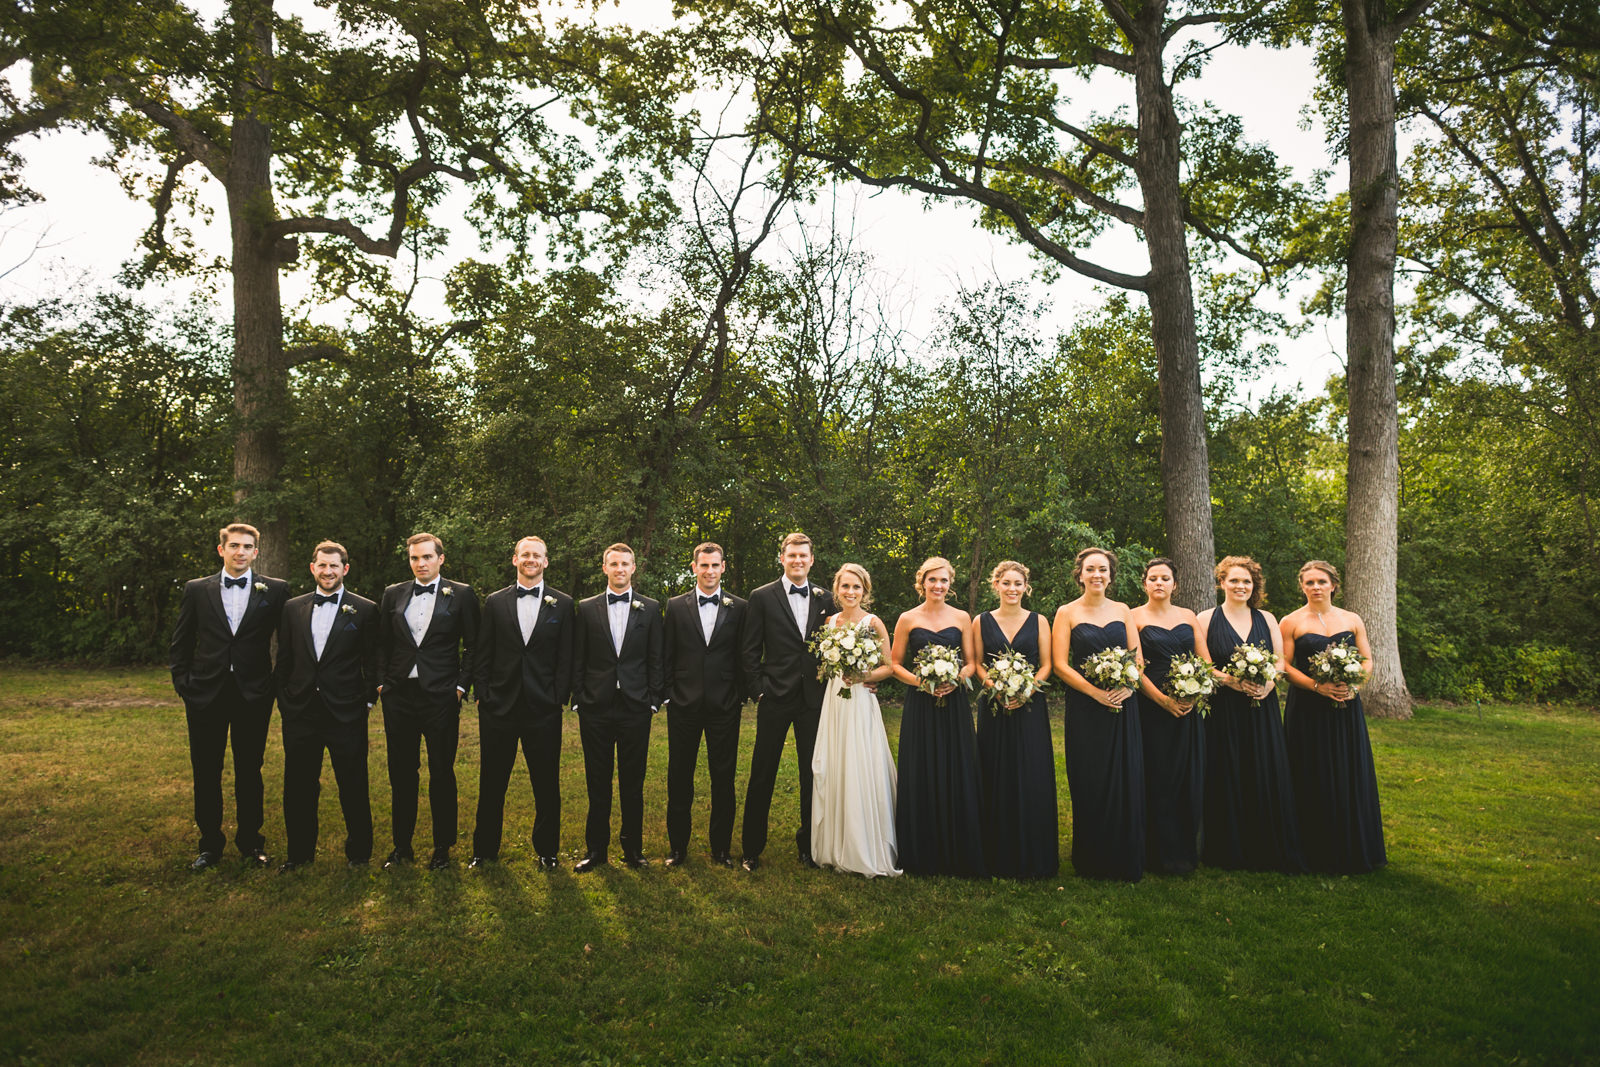 35-bridal-party-photos